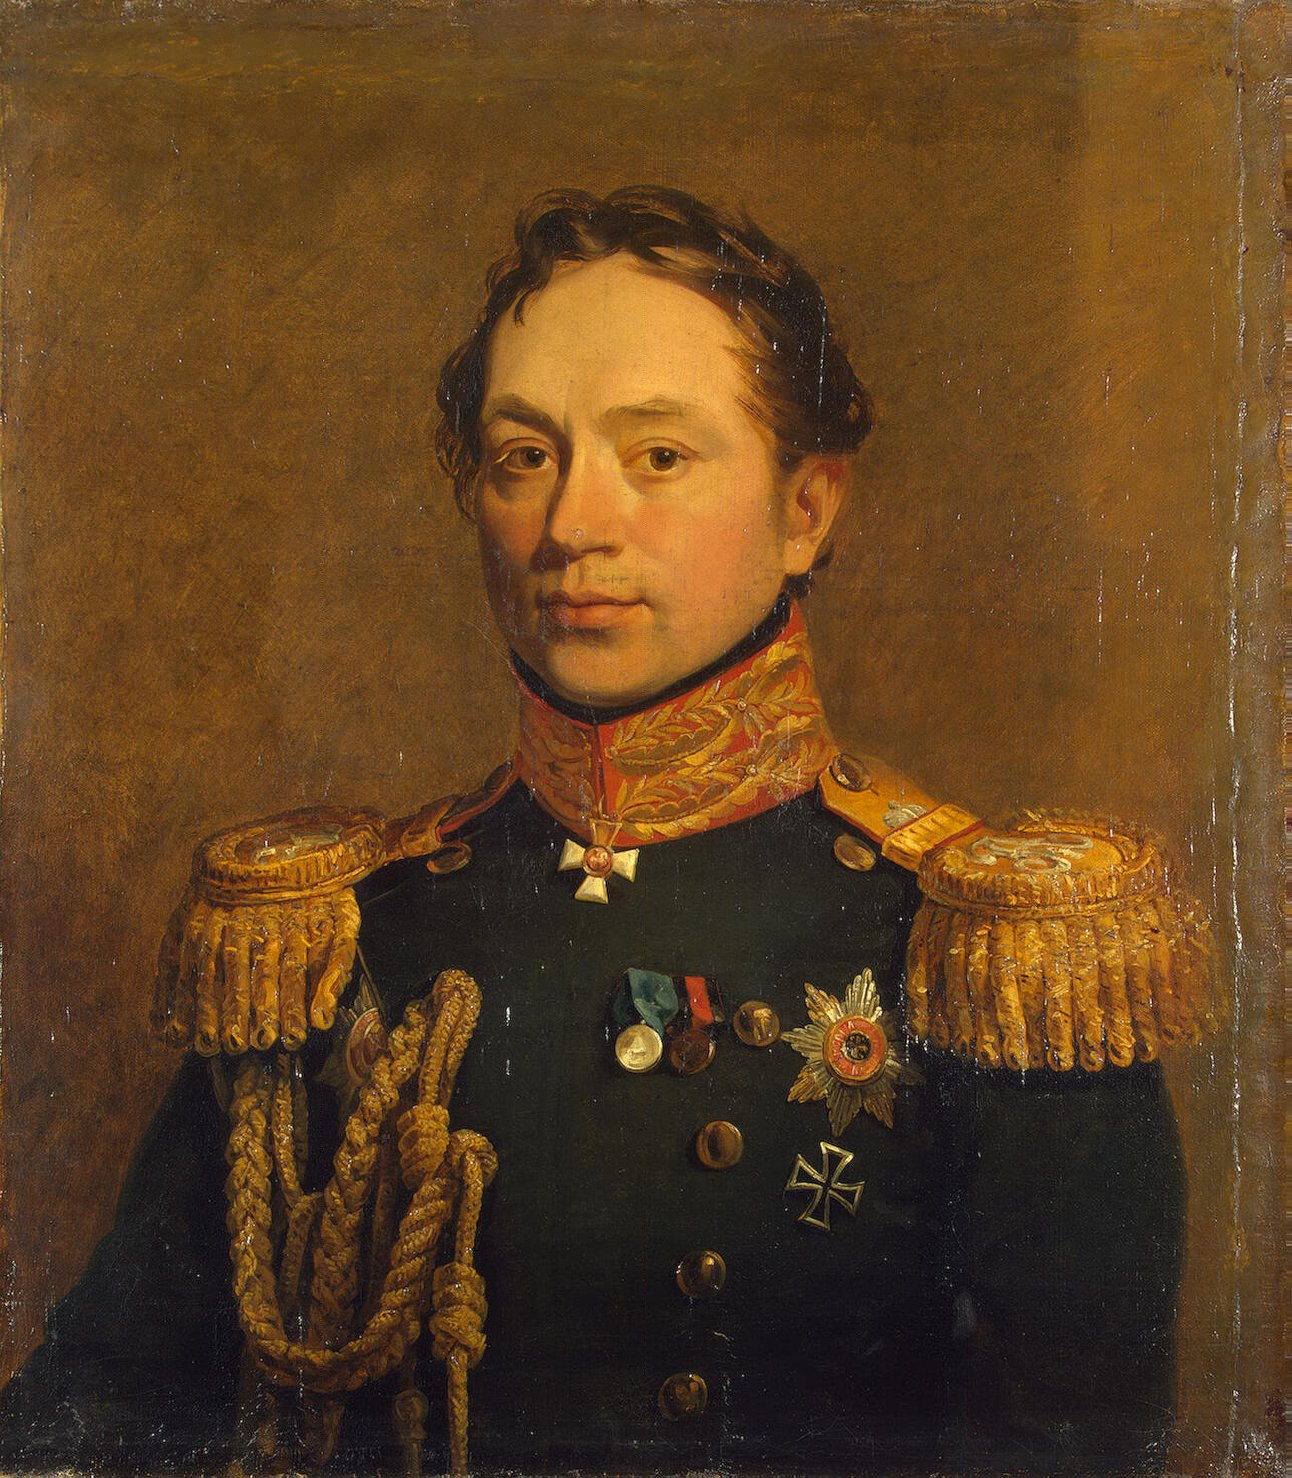 https://upload.wikimedia.org/wikipedia/commons/4/41/Rozen_2_Grigory_Vladimirovich.jpg